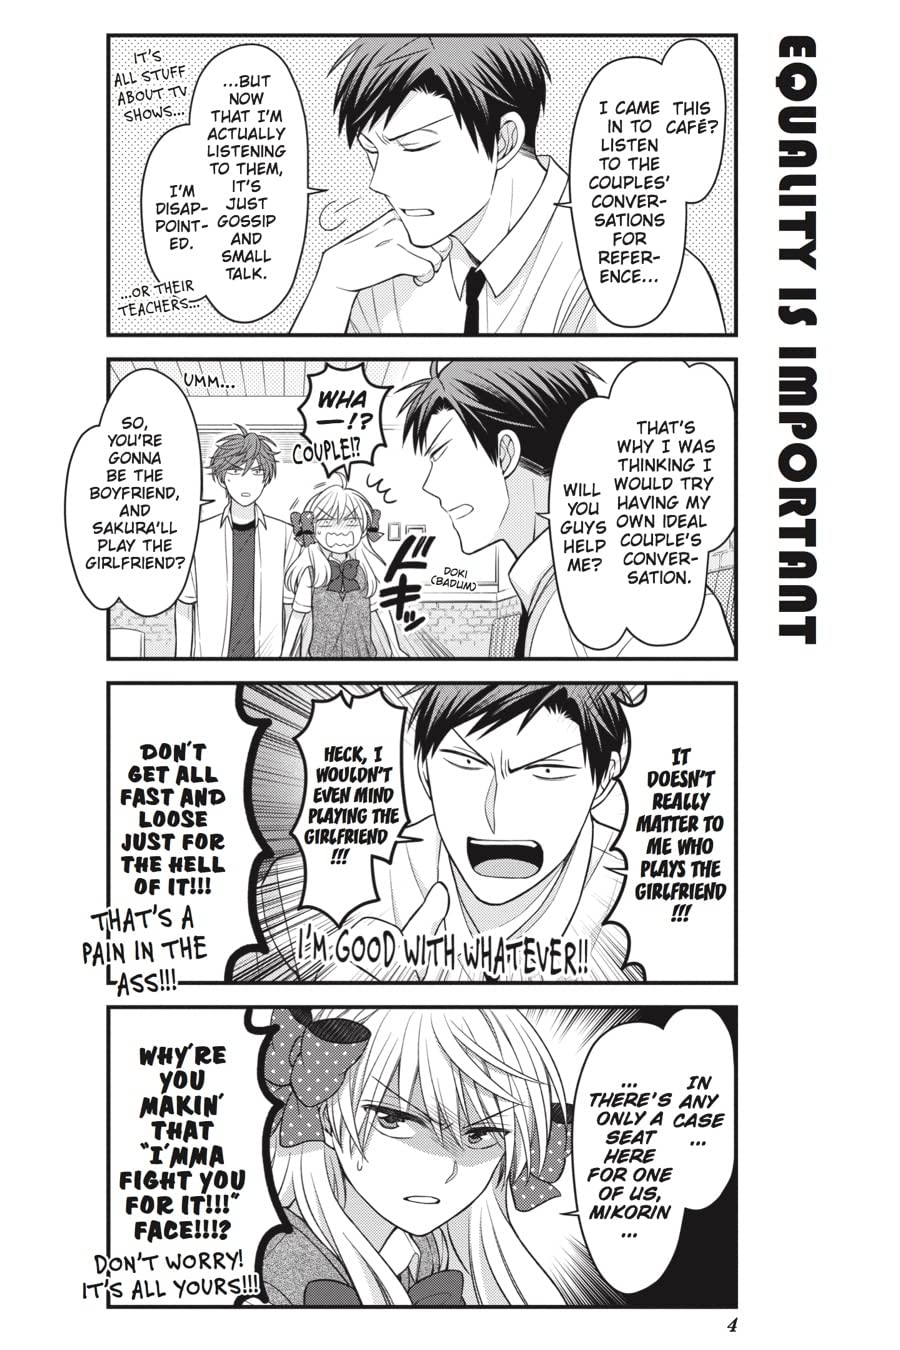 Monthly Girls' Nozaki-kun Vol. 9